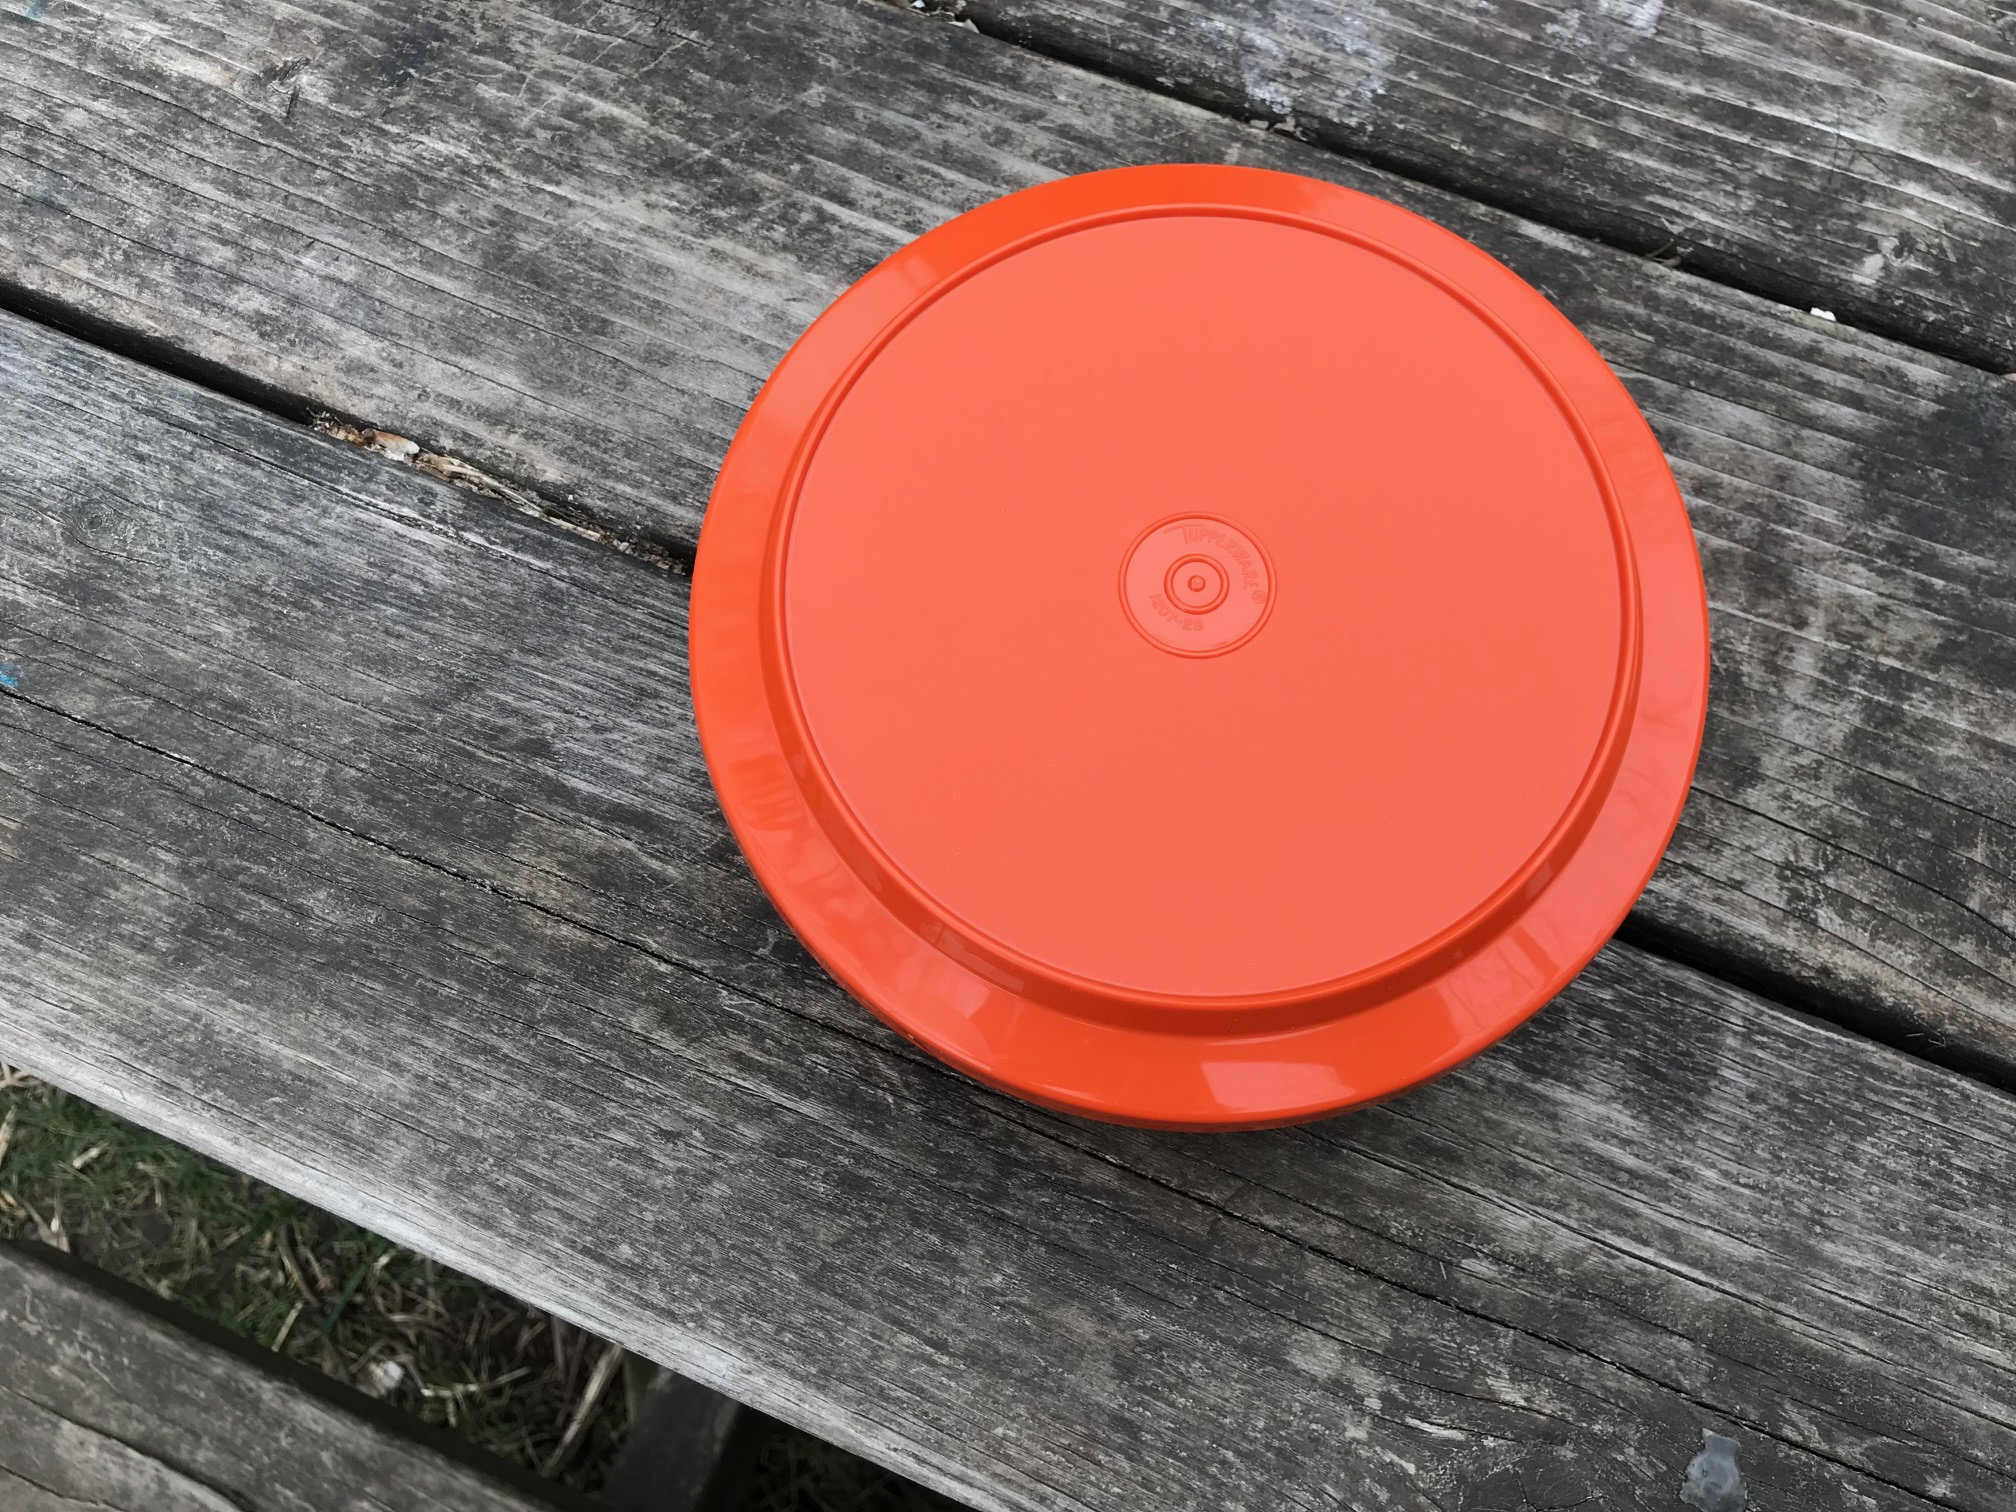 Another vintage Tupperware example, orange bowl with Lid: 3,380 ppm Cadmium + 935 ppm Mercury [both are poisons for humans.]